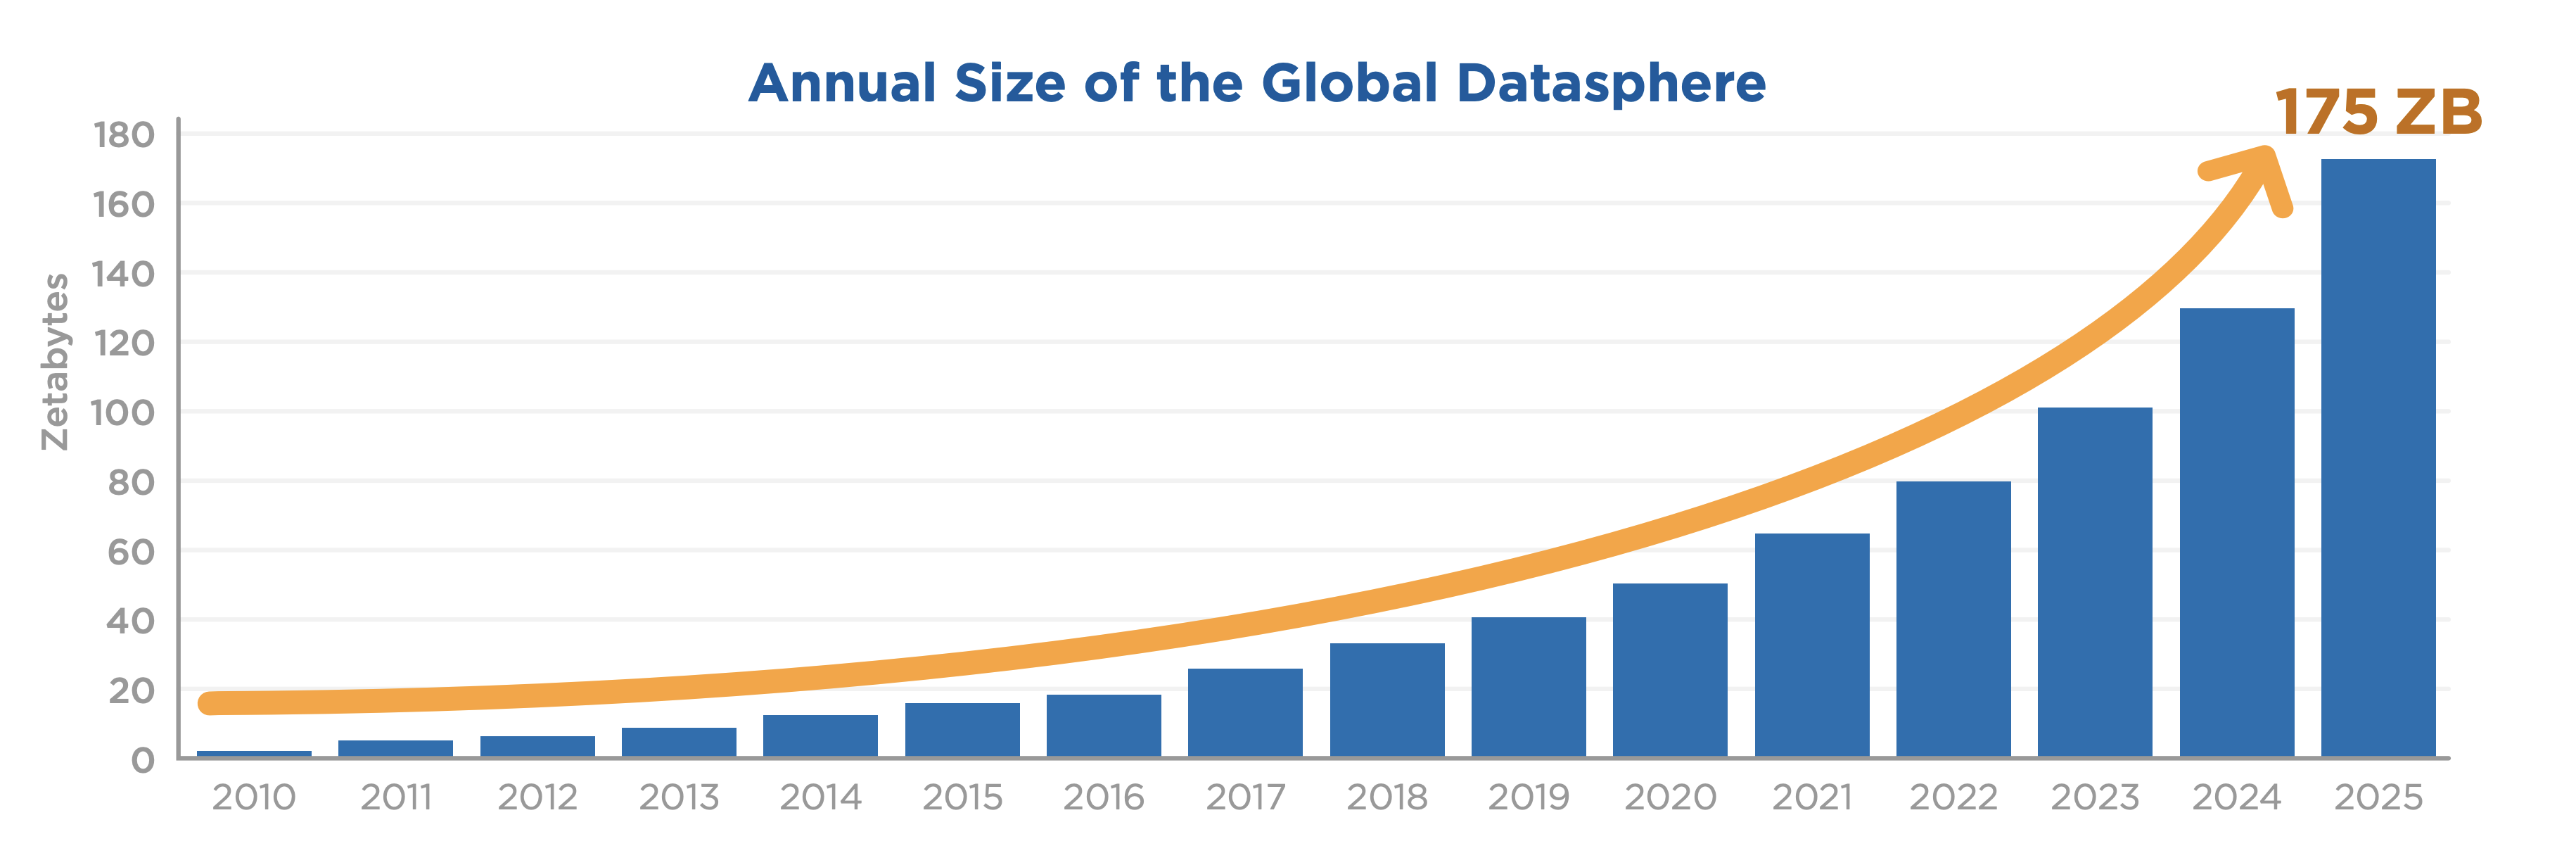 The amount of data worldwide is expected to more than triple by 2025